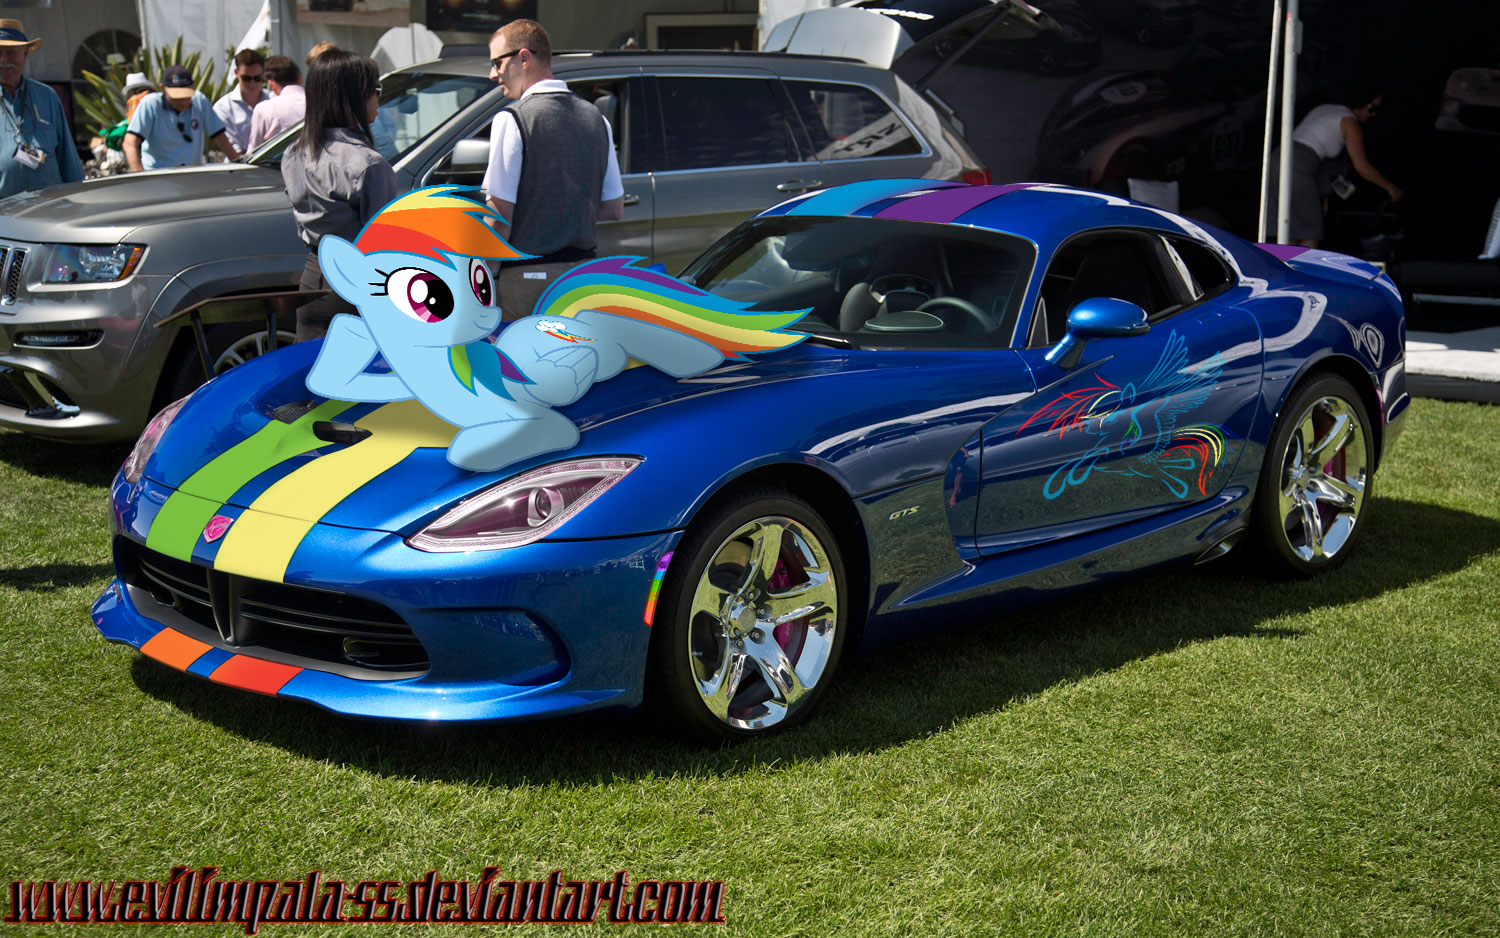 Rainbow Dash And Dodge Viper 2013 Gts In Car Show Dodge Viper Viper Gts Viper